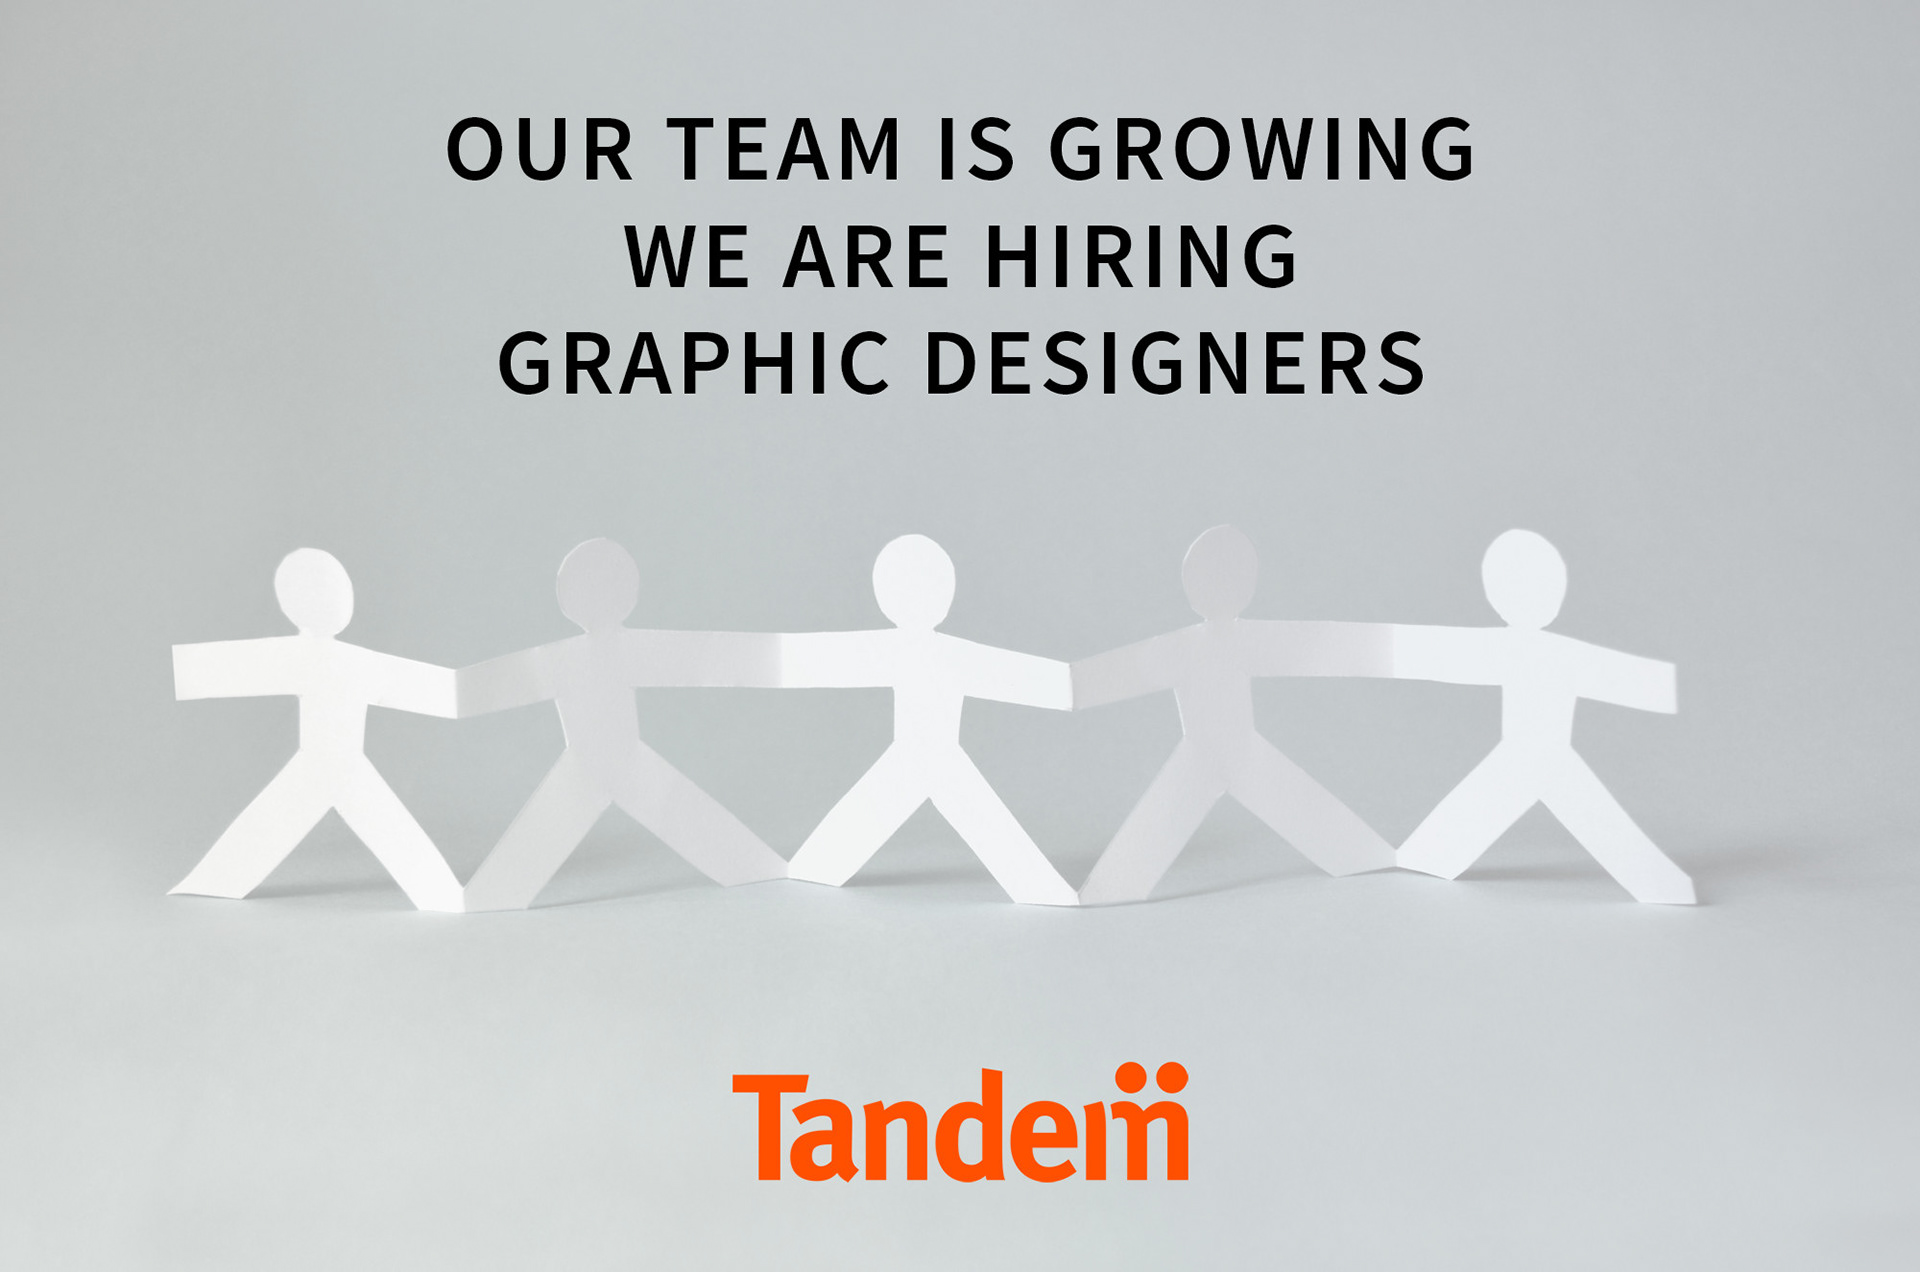 tandem is looking for a full time graphic designer to work independently or part of a team on design projects from concept to execution under the directions